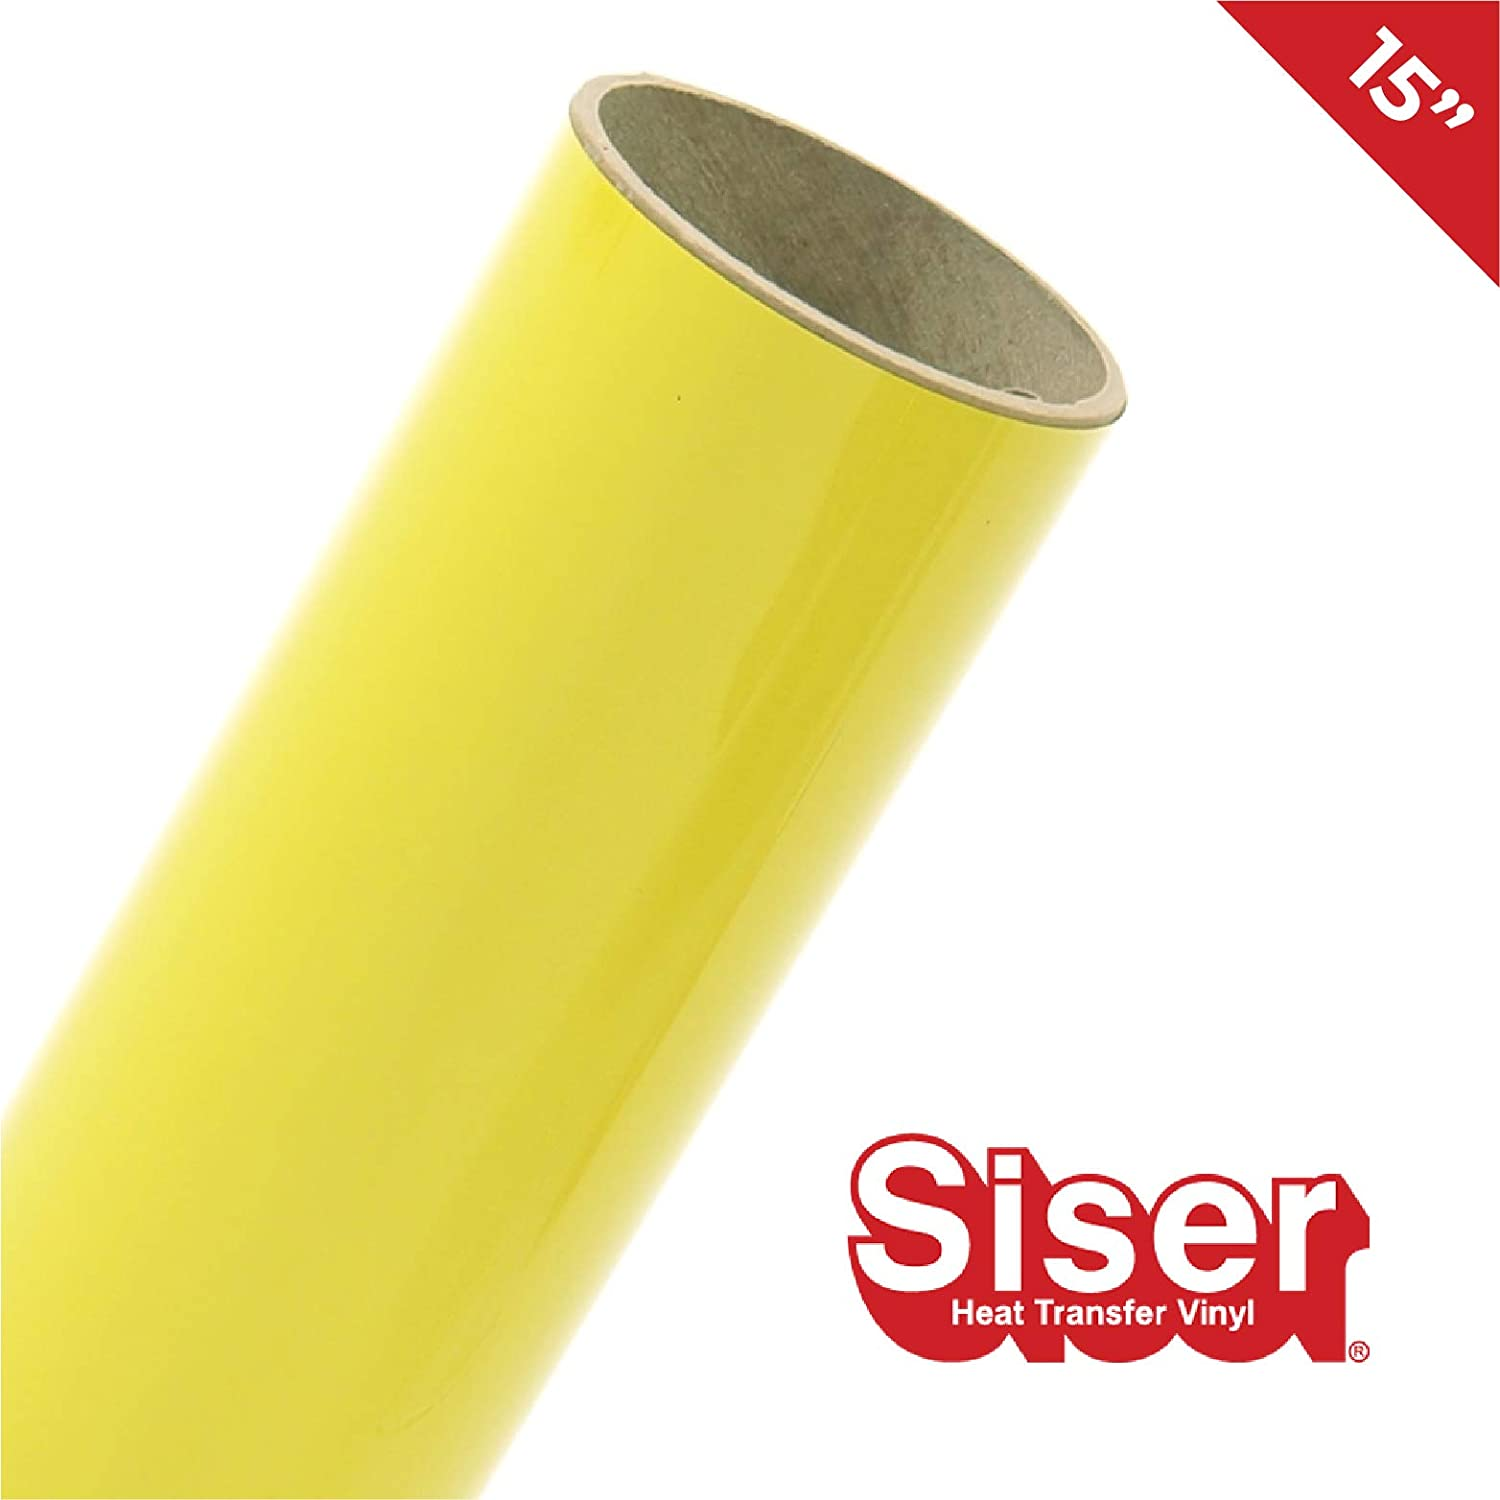 White, 3ft x 10 Inch Siser Easyweed Gloss Finish Heat-Transfer Vinyl Including Hard Yellow Detailer Squeegee